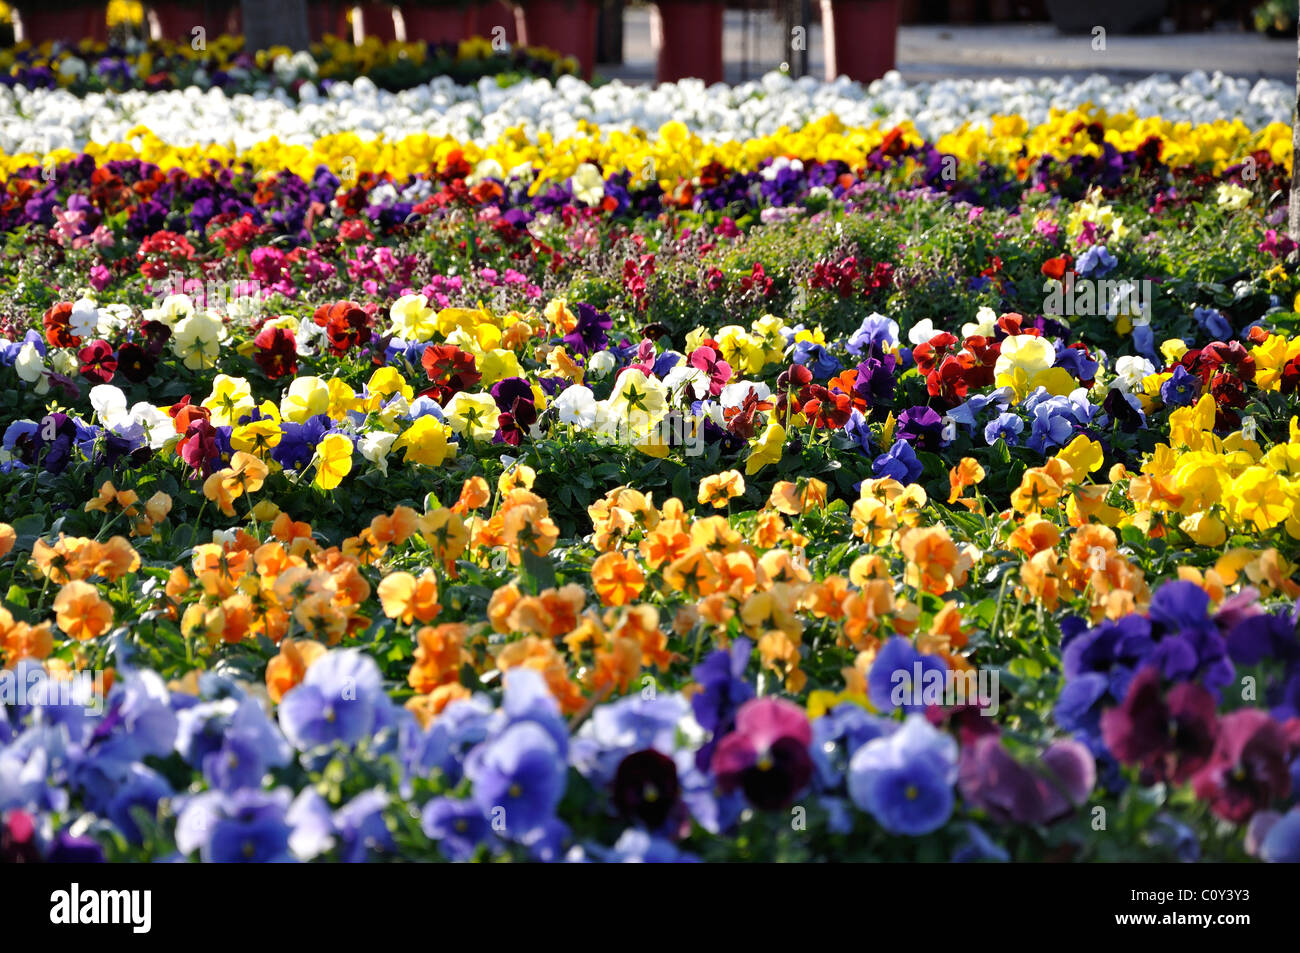 Usa texas dallas flower market stock photos usa texas dallas spring flowers for sale at farmers market in dallas texas usa stock image izmirmasajfo